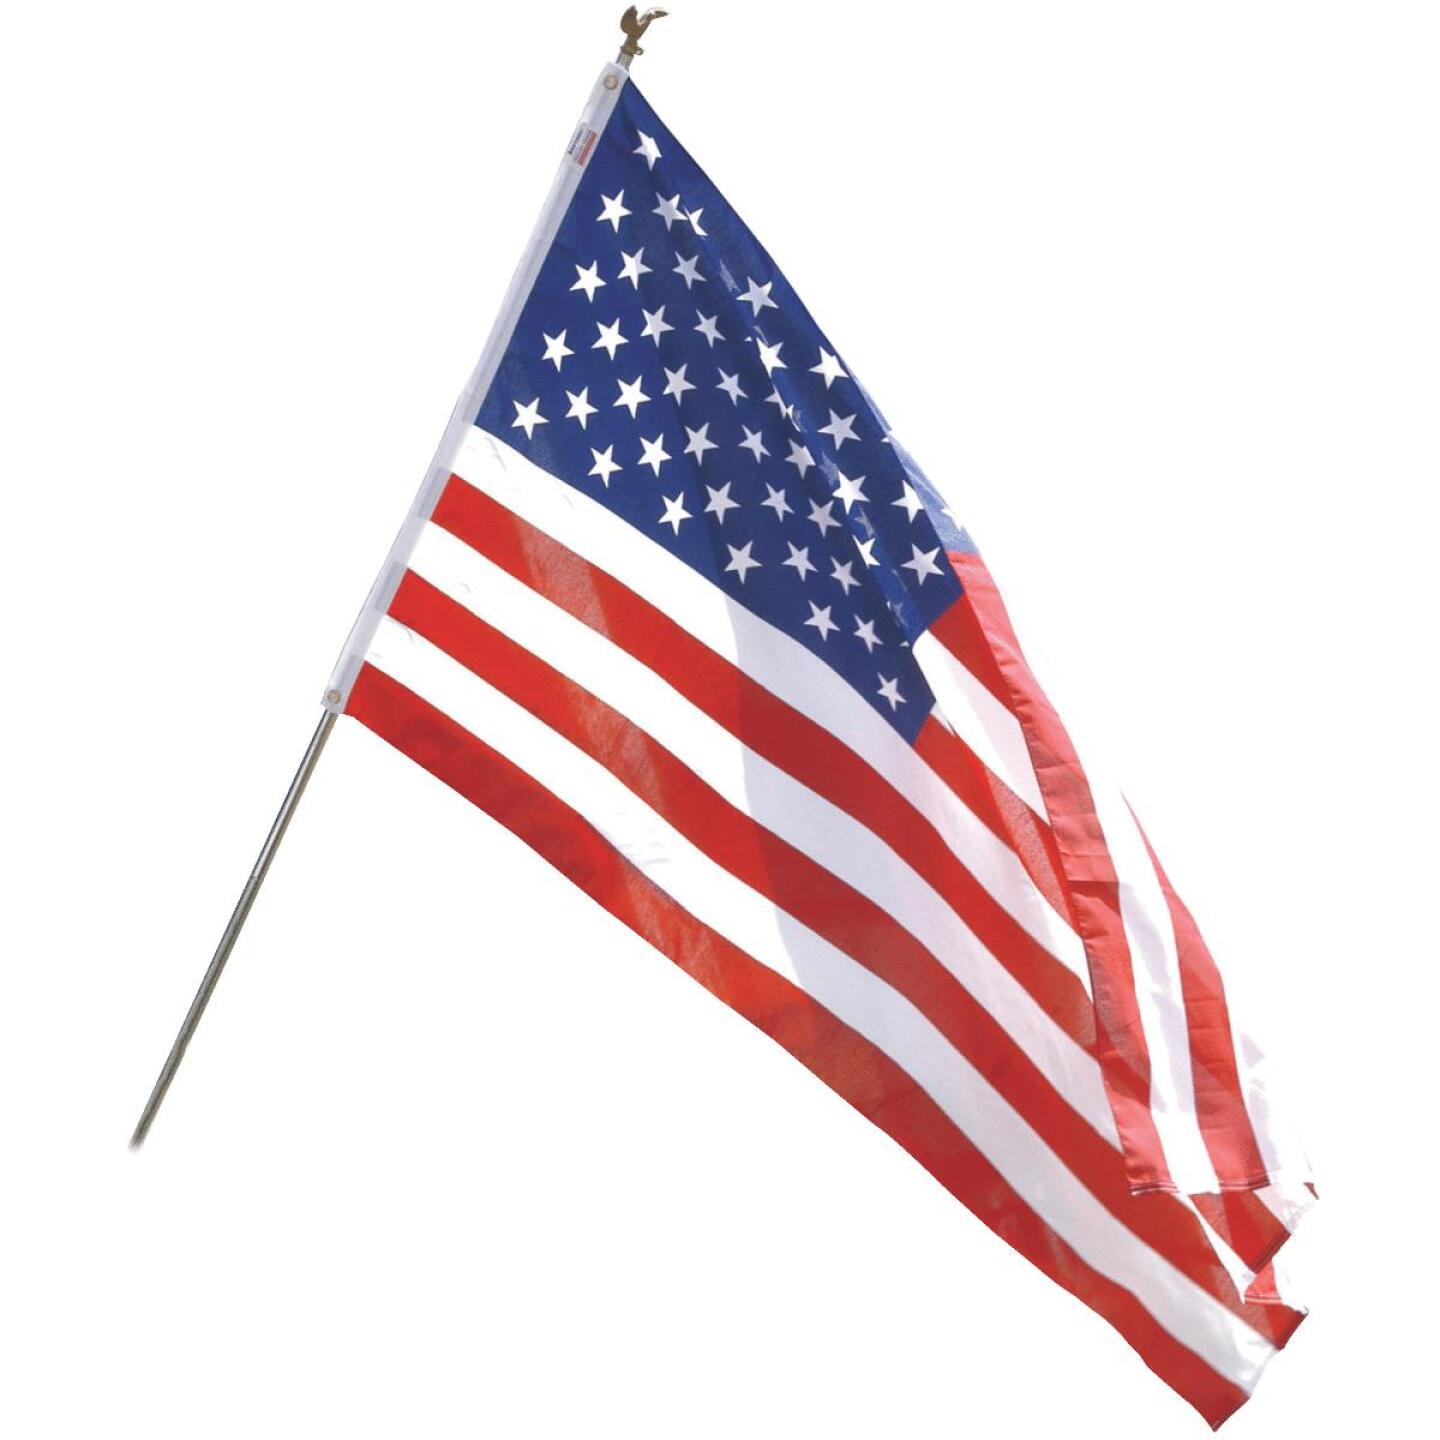 Valley Forge 3 Ft. x 5 Ft. Polycotton American Flag & 6 Ft. Pole Kit Image 1